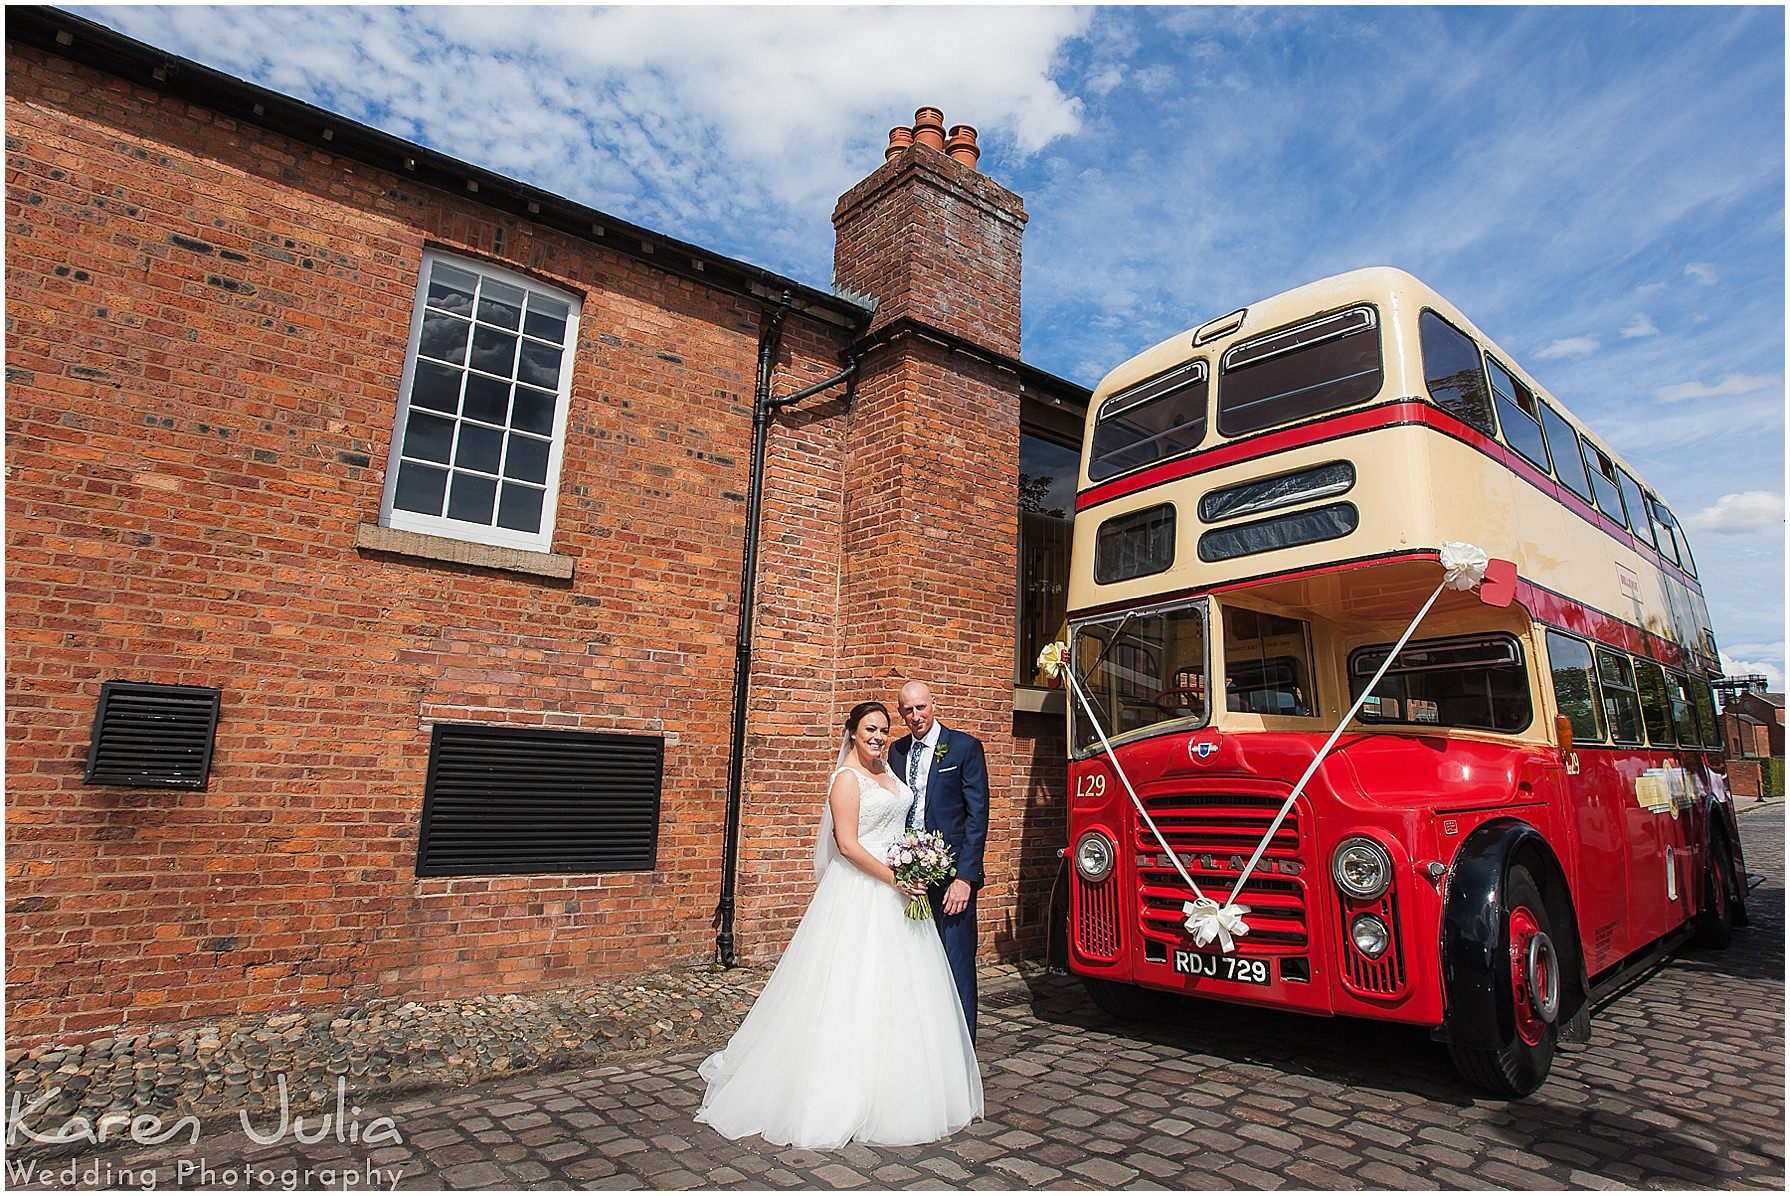 Bride and Groom outside Castlefield Rooms wedding venue with vintage red and cream double decker bus